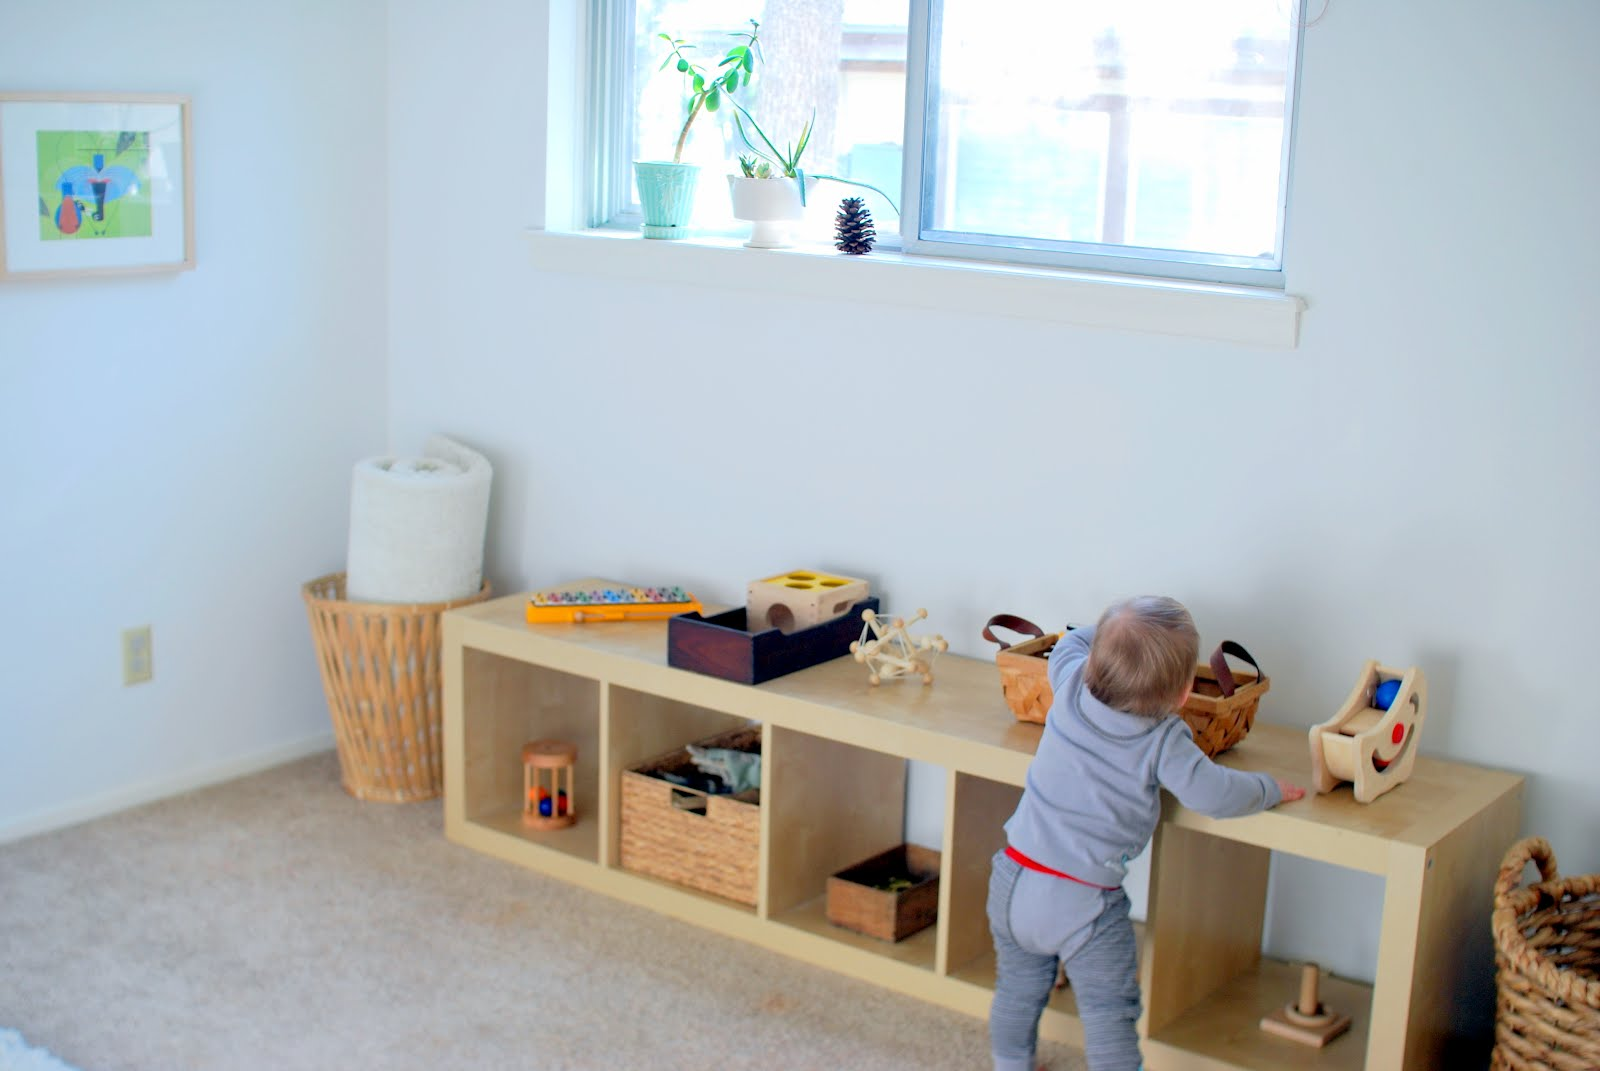 Feeding the soil montessori bedroom for a one year old for Chambre montessori